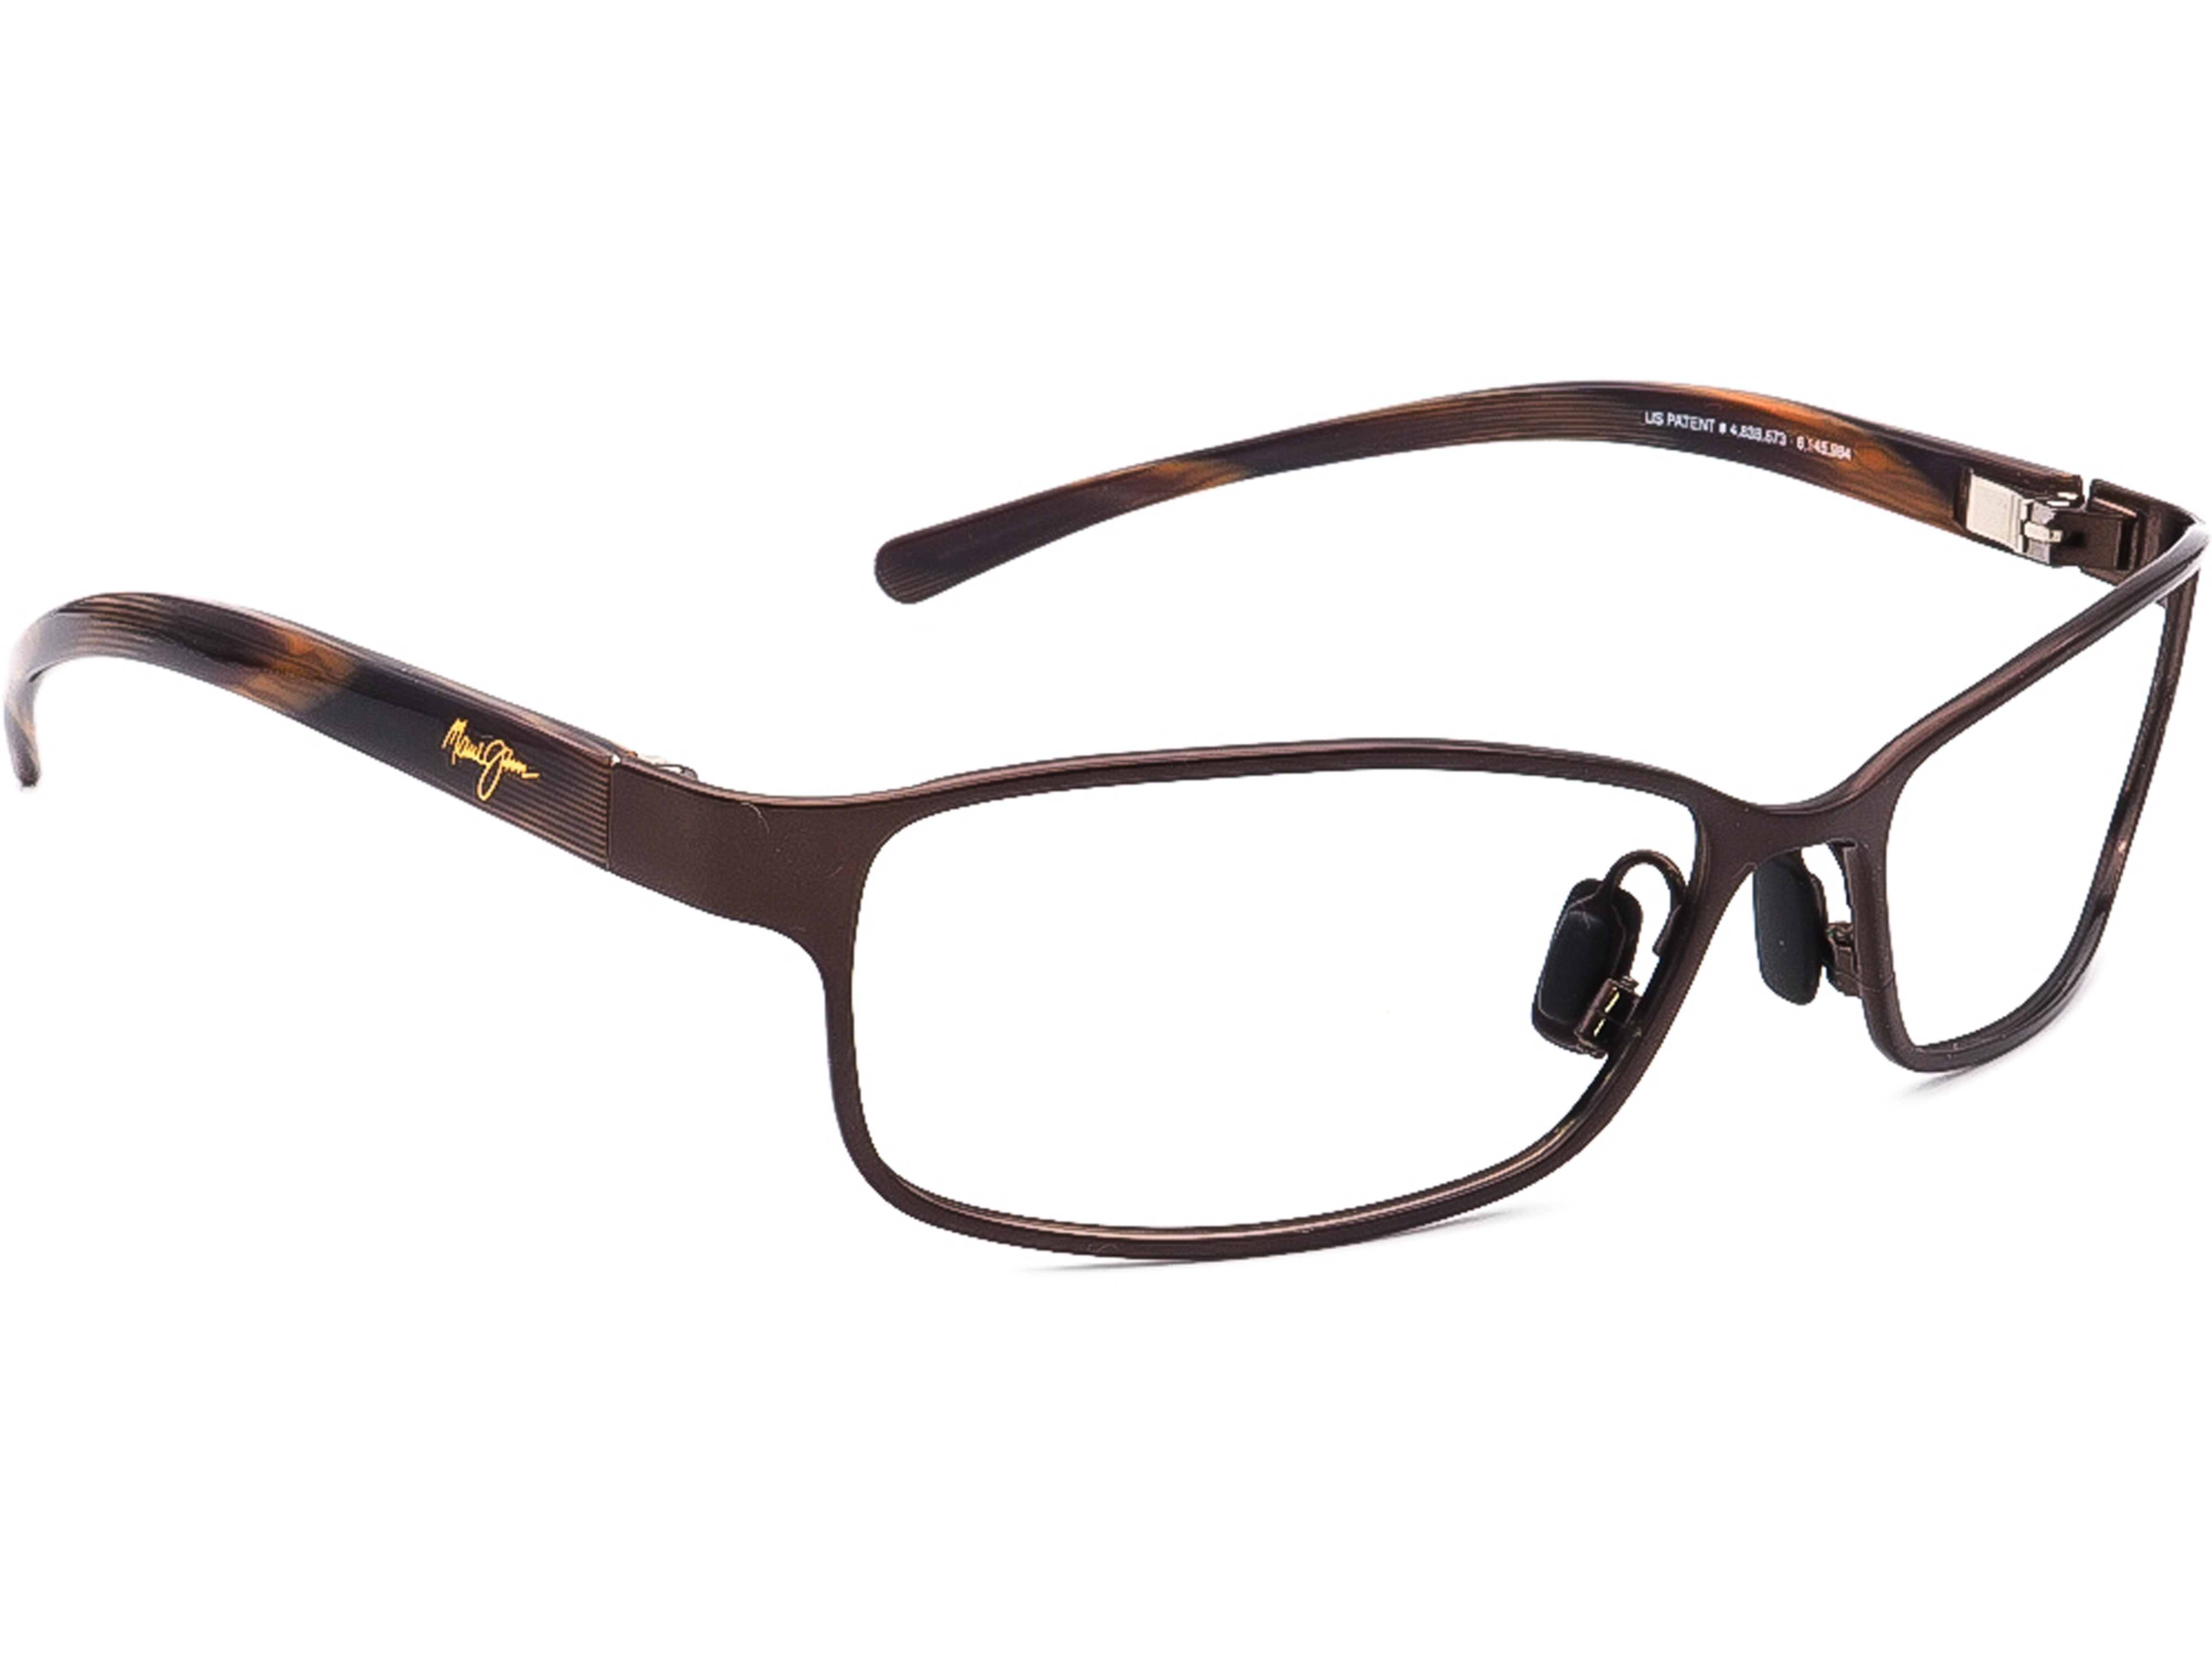 Maui Jim MJ-114-25 Sunglasses Frame Only